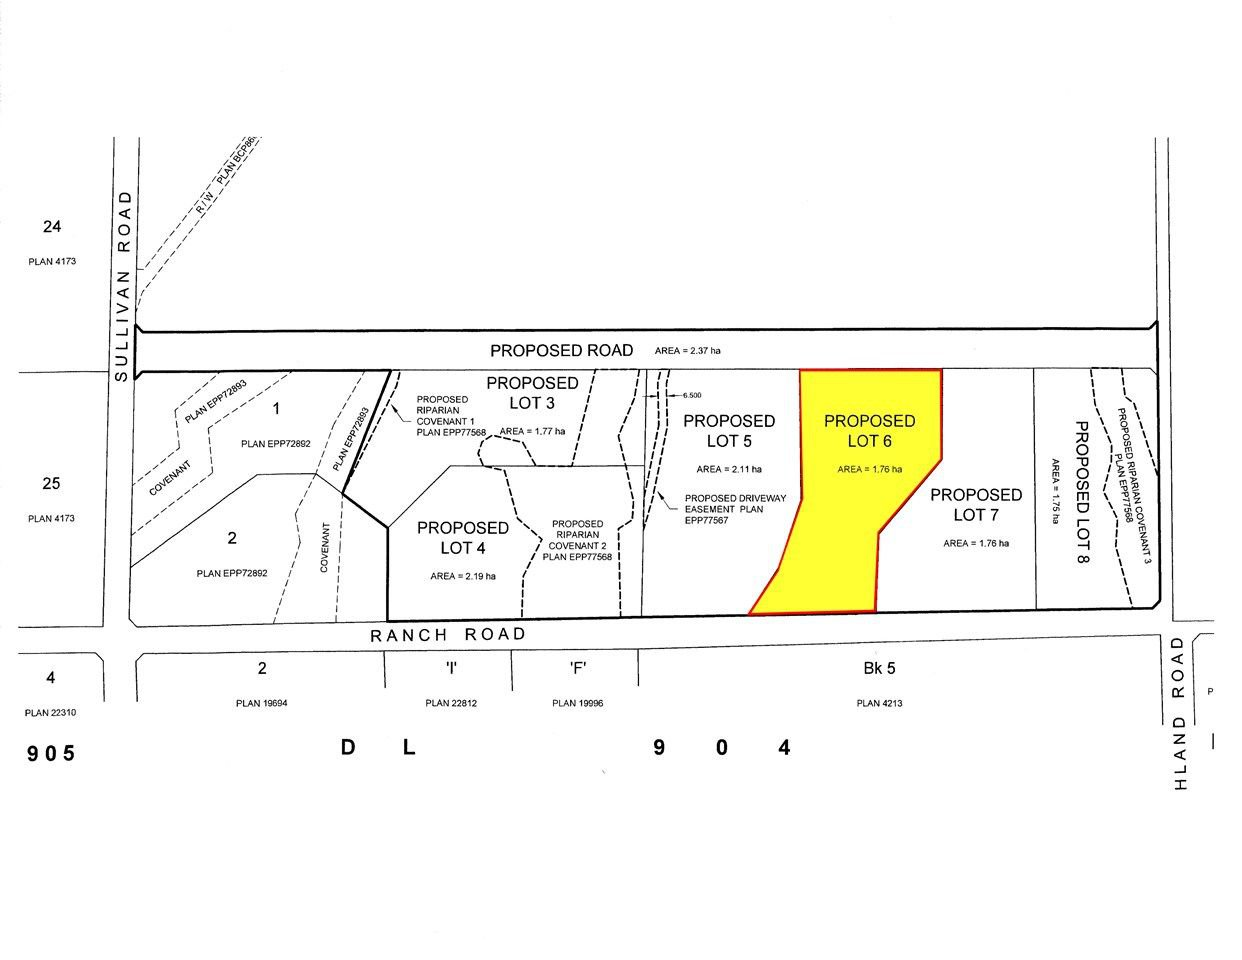 Main Photo: LOT 6 HARMAN ROAD: Roberts Creek Land for sale (Sunshine Coast)  : MLS®# R2227364